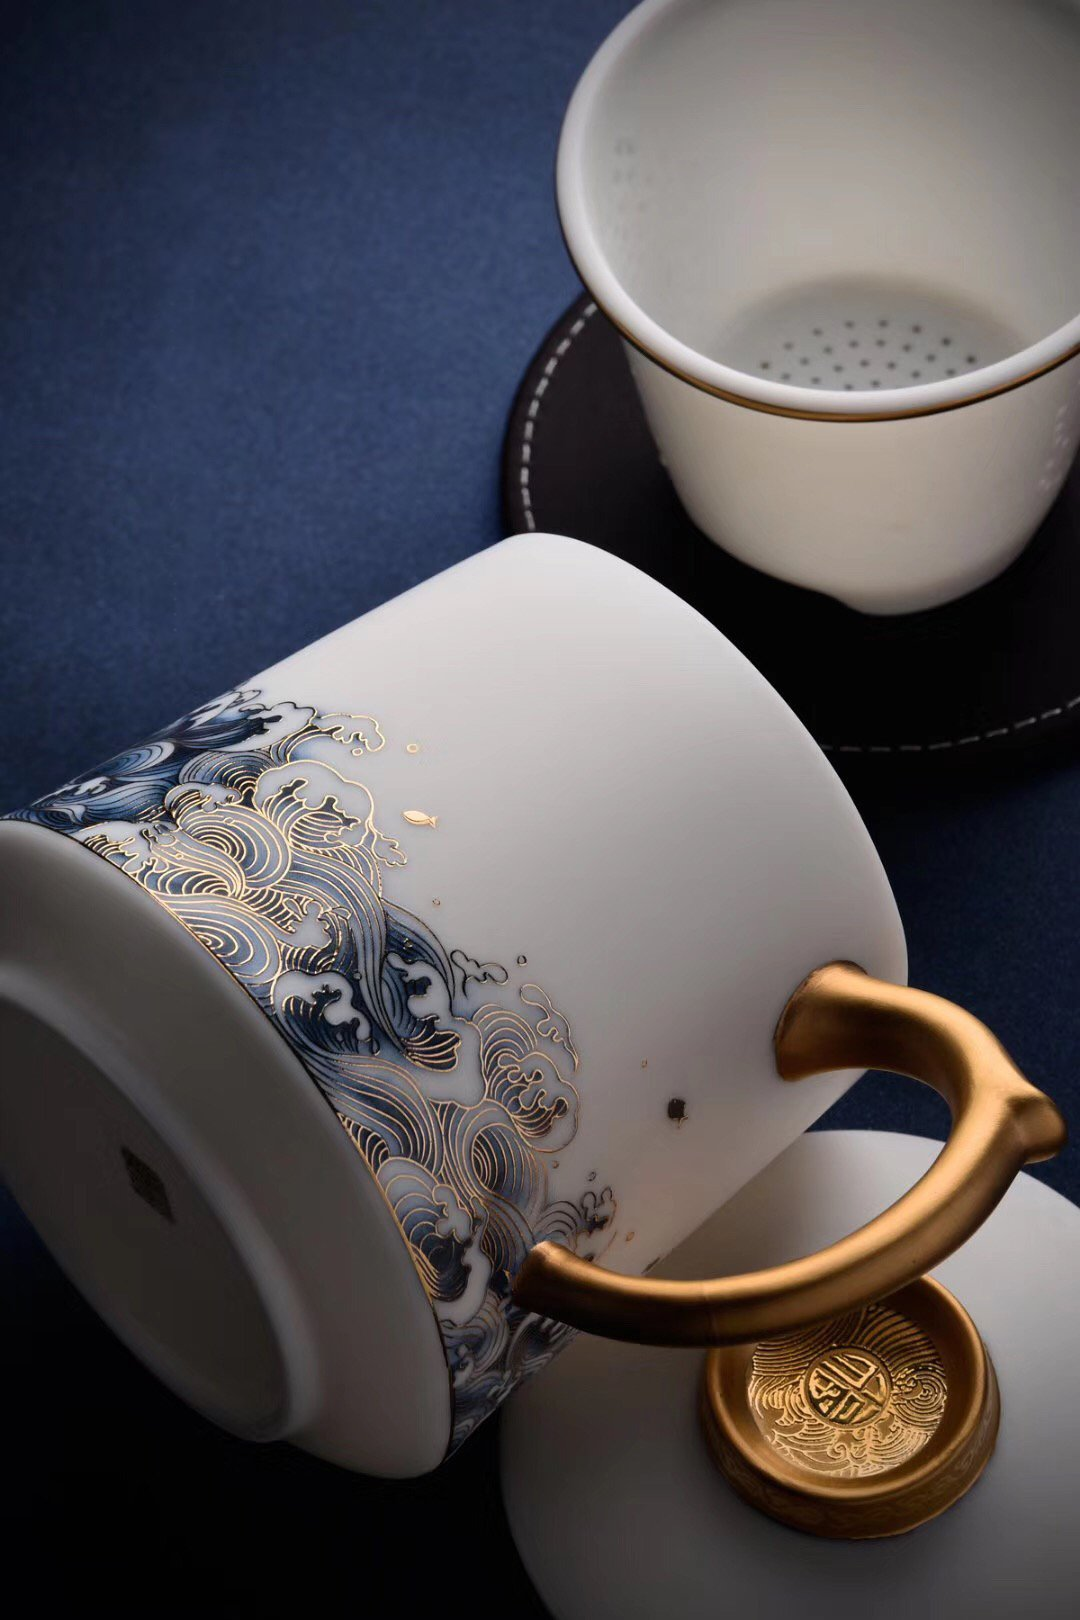 Blanc De Chine Teacup Coffee-Cup Handcrafted Porcelain|Best Ceramics